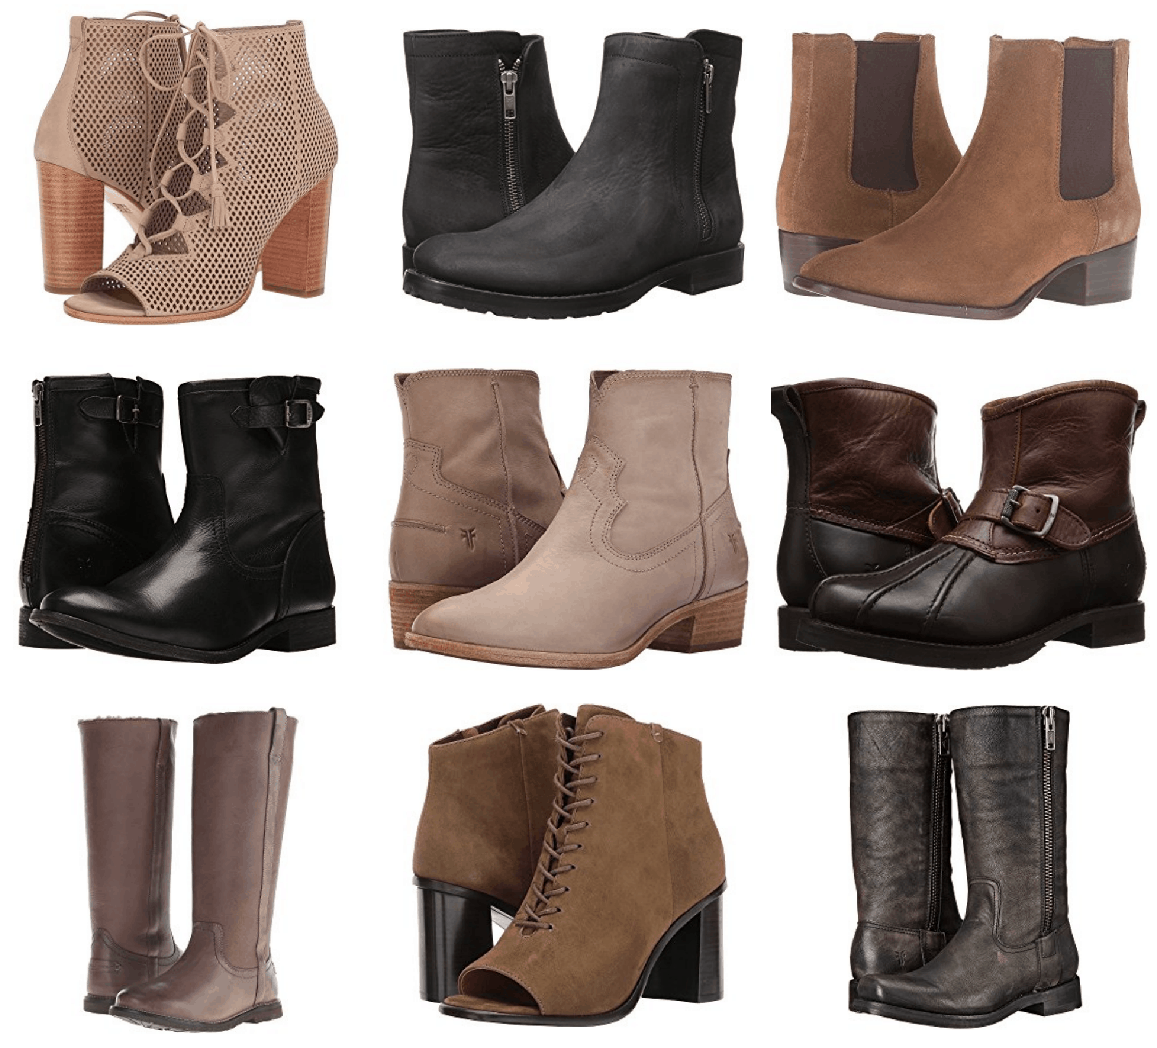 Frye Boots 70% OFF!